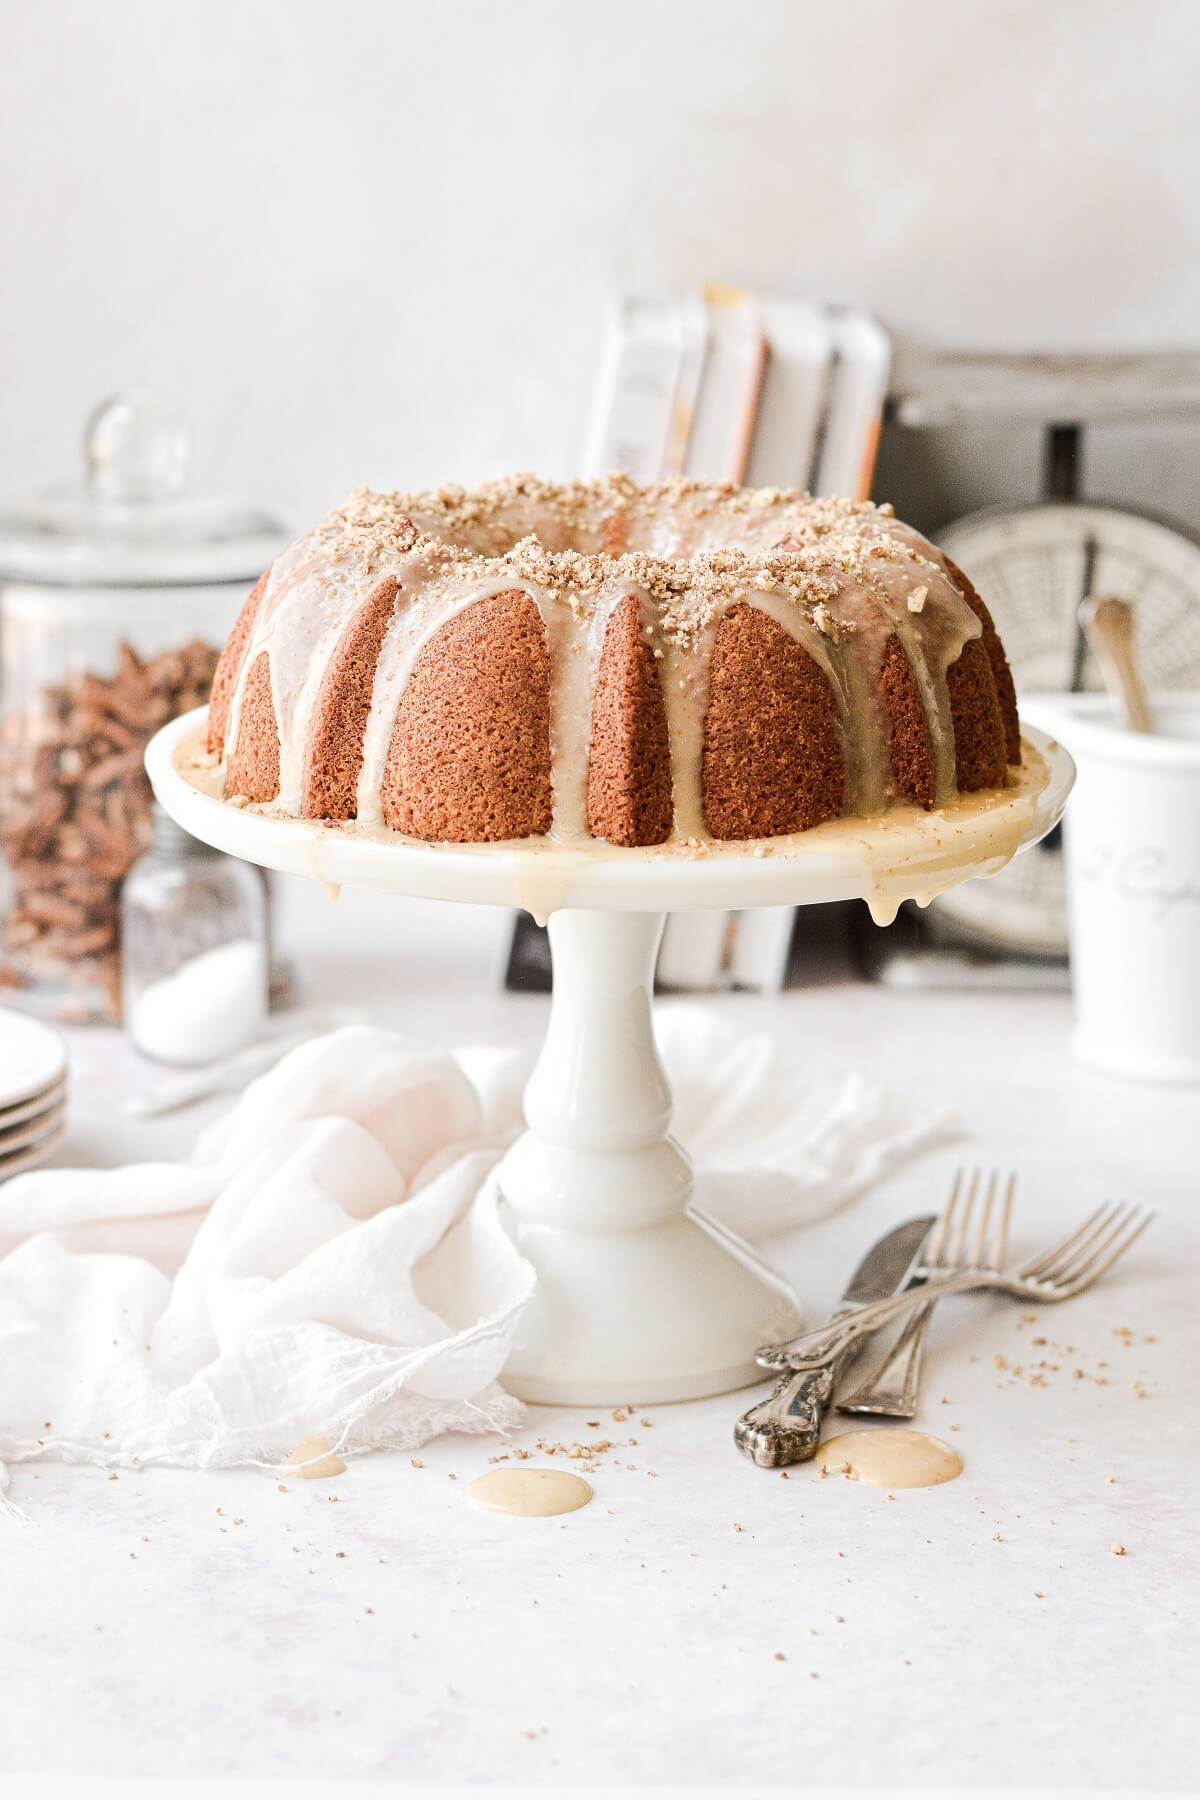 Butter pecan pound cake on a white cake stand, with bourbon icing.